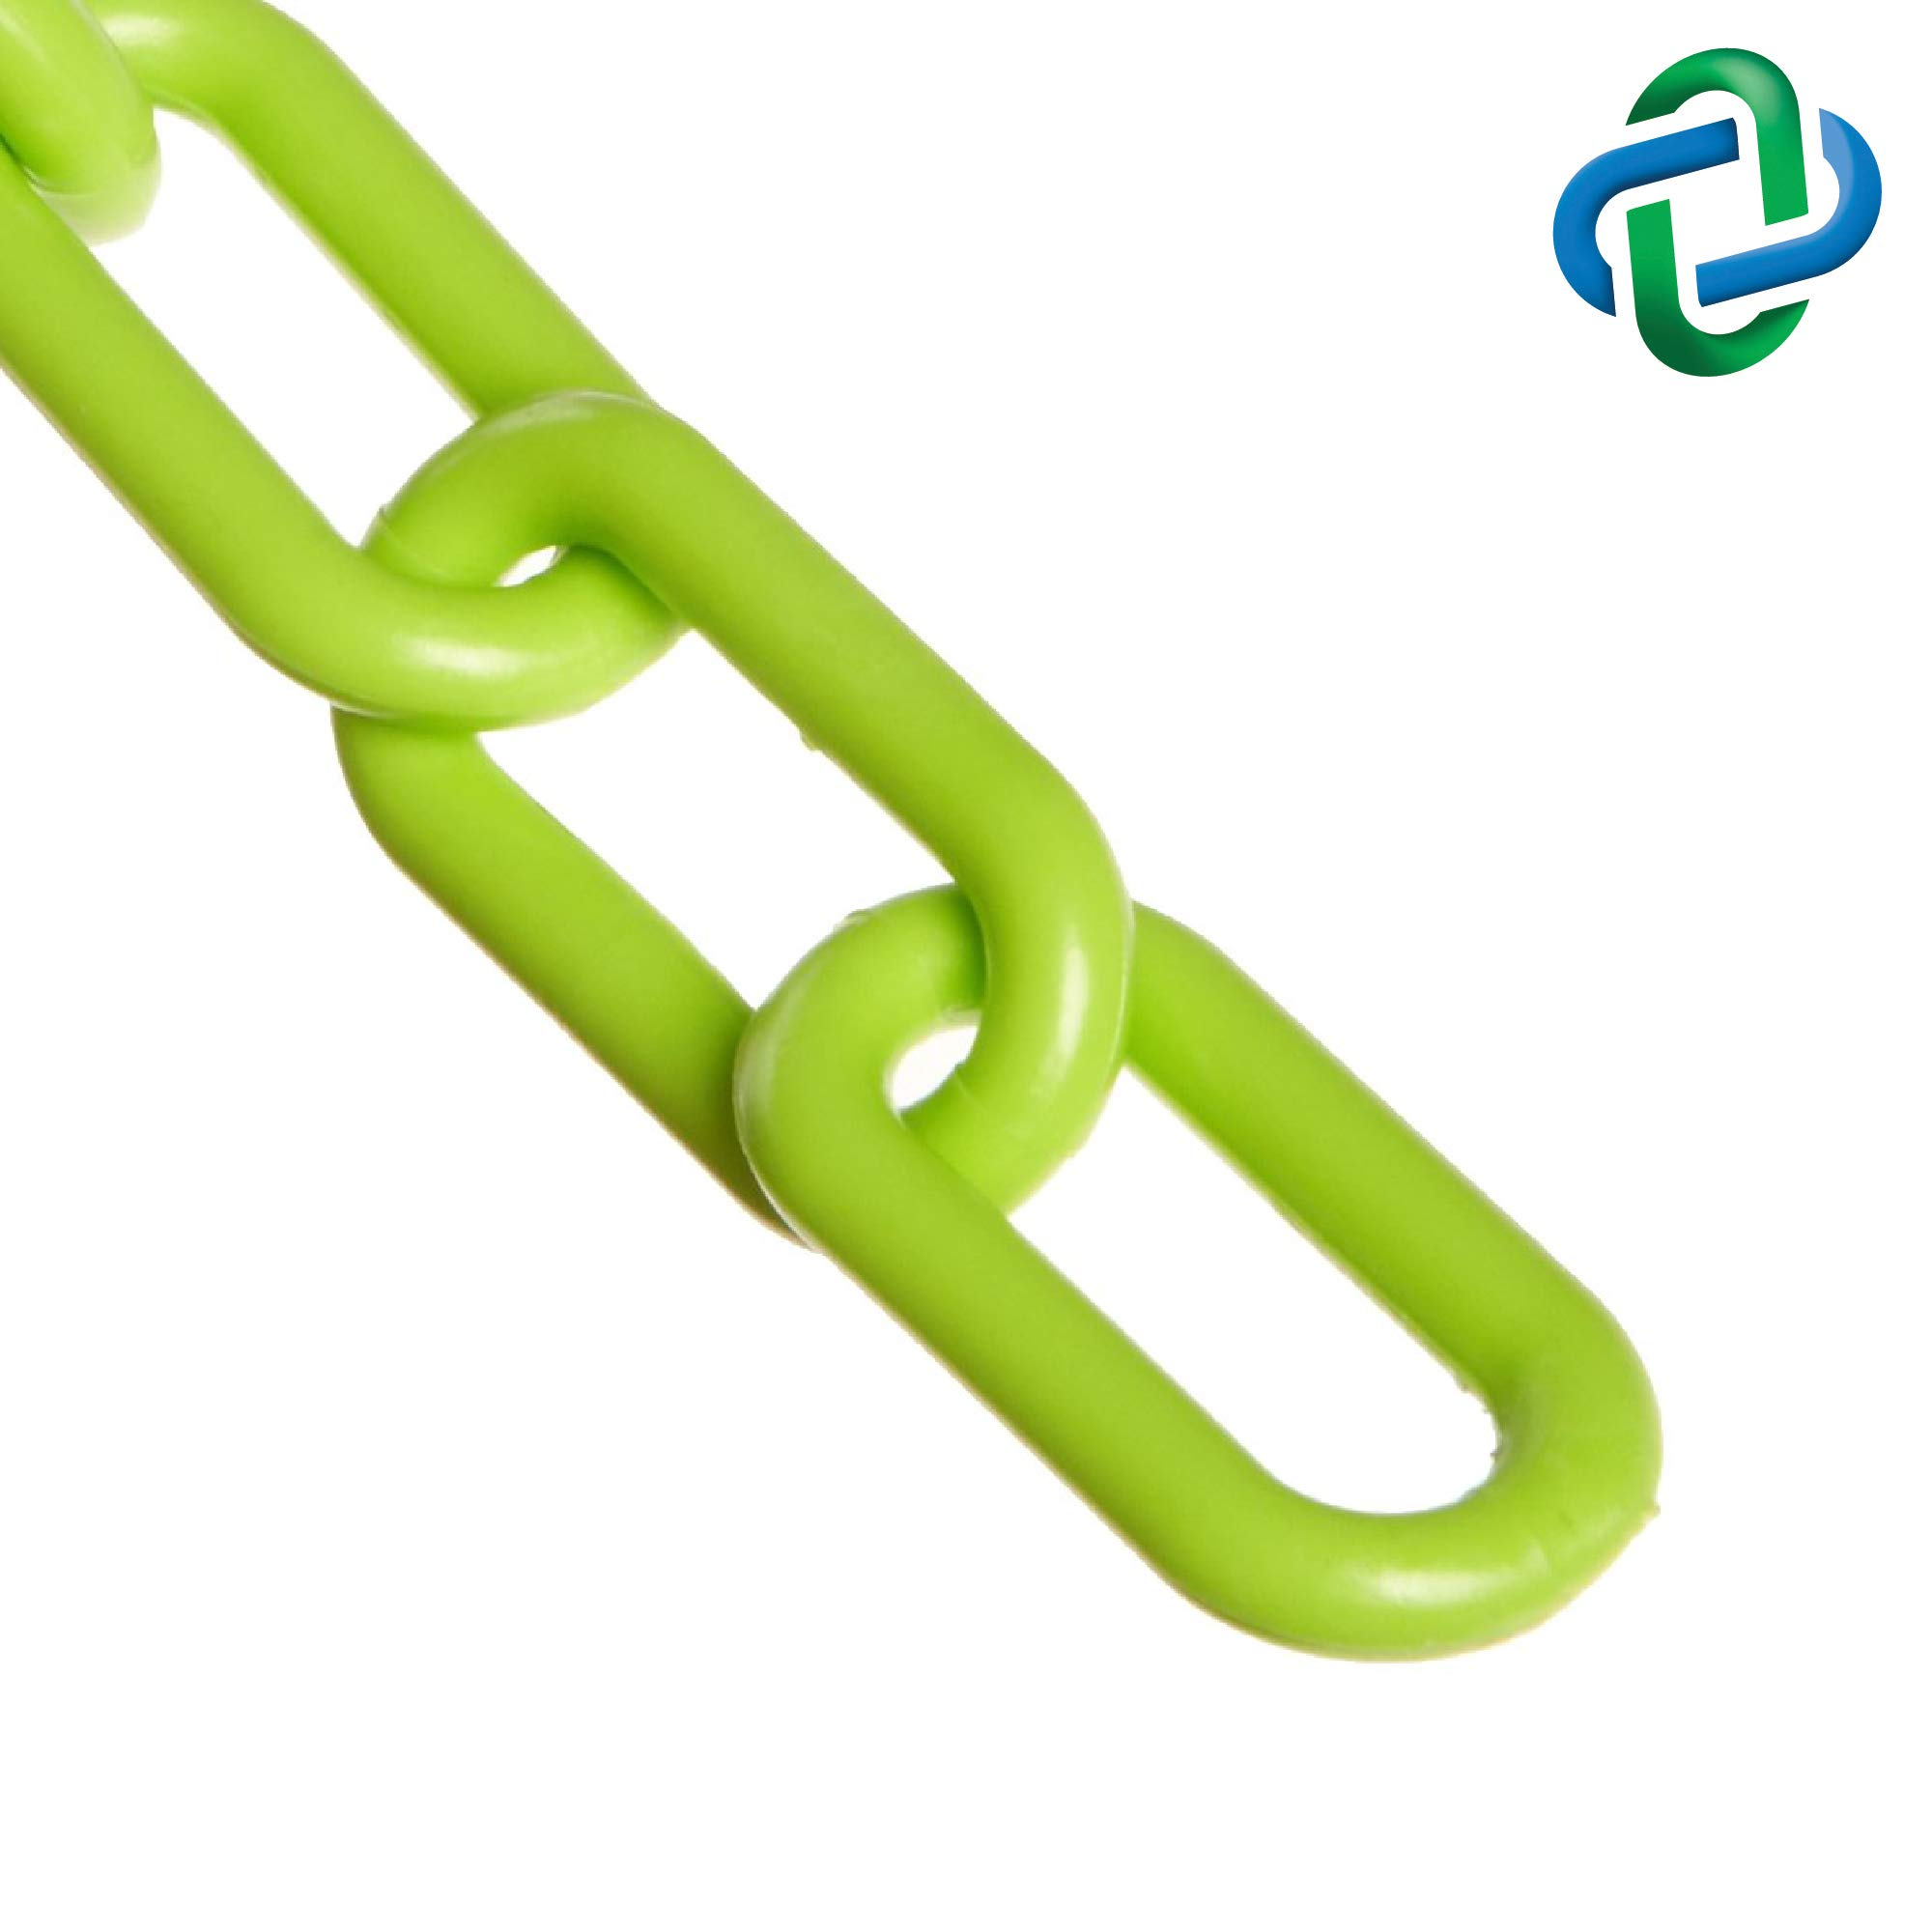 Mr. Chain Plastic Barrier Chain, Safety Green, 2-Inch Link Diameter, 25-Foot Length (50014-25) by Mr. Chain